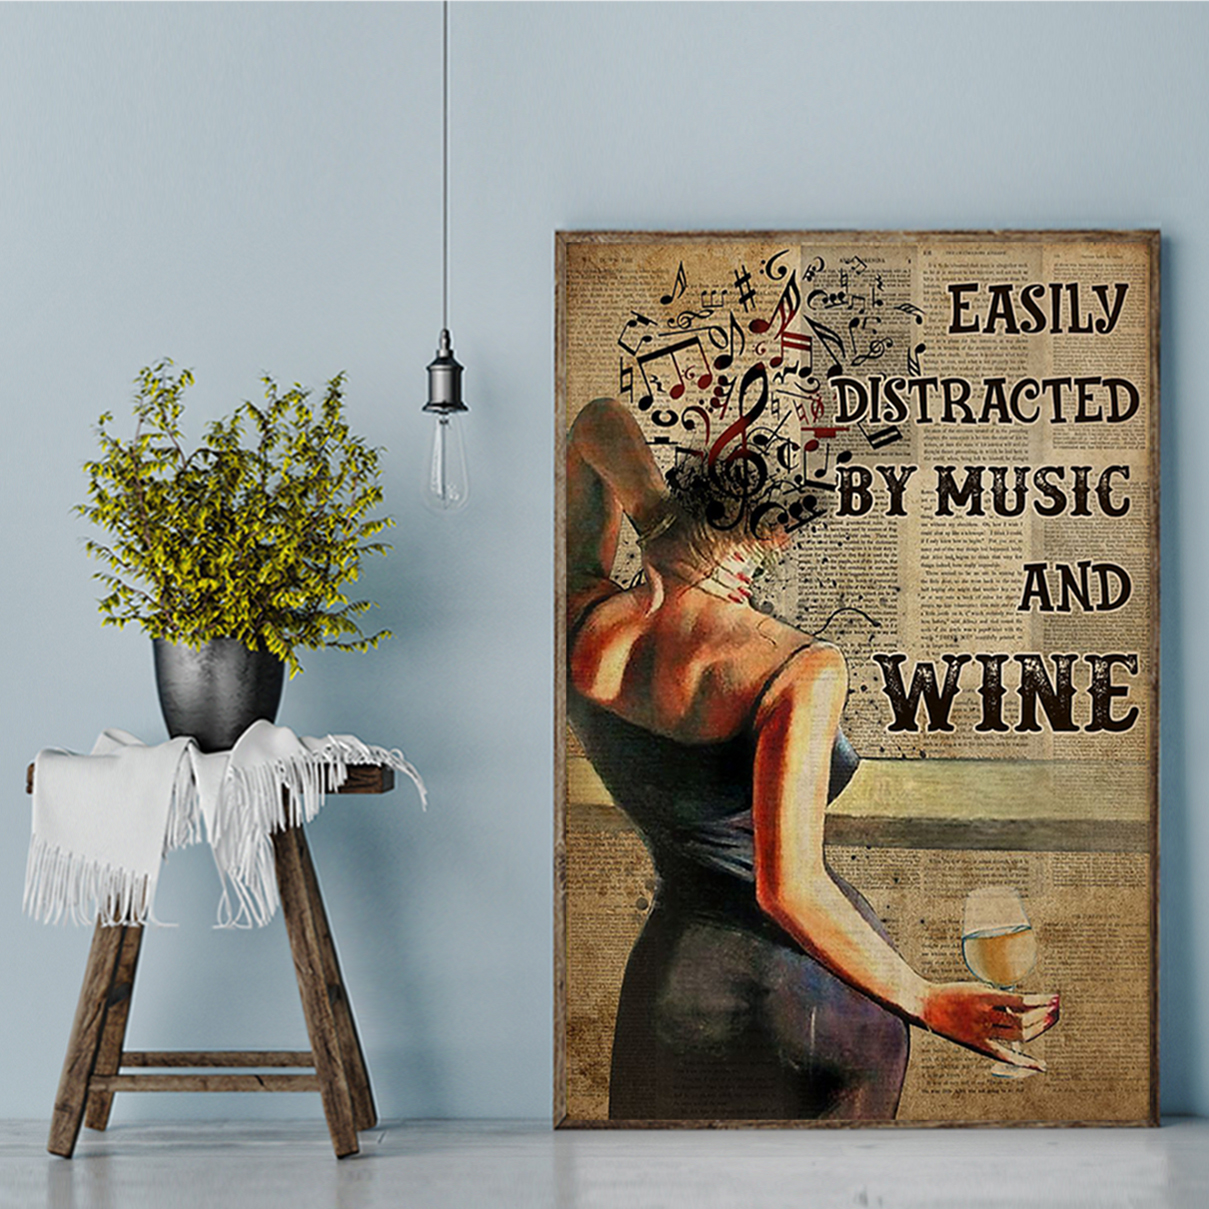 Easily distracted by music and white wine poster A2